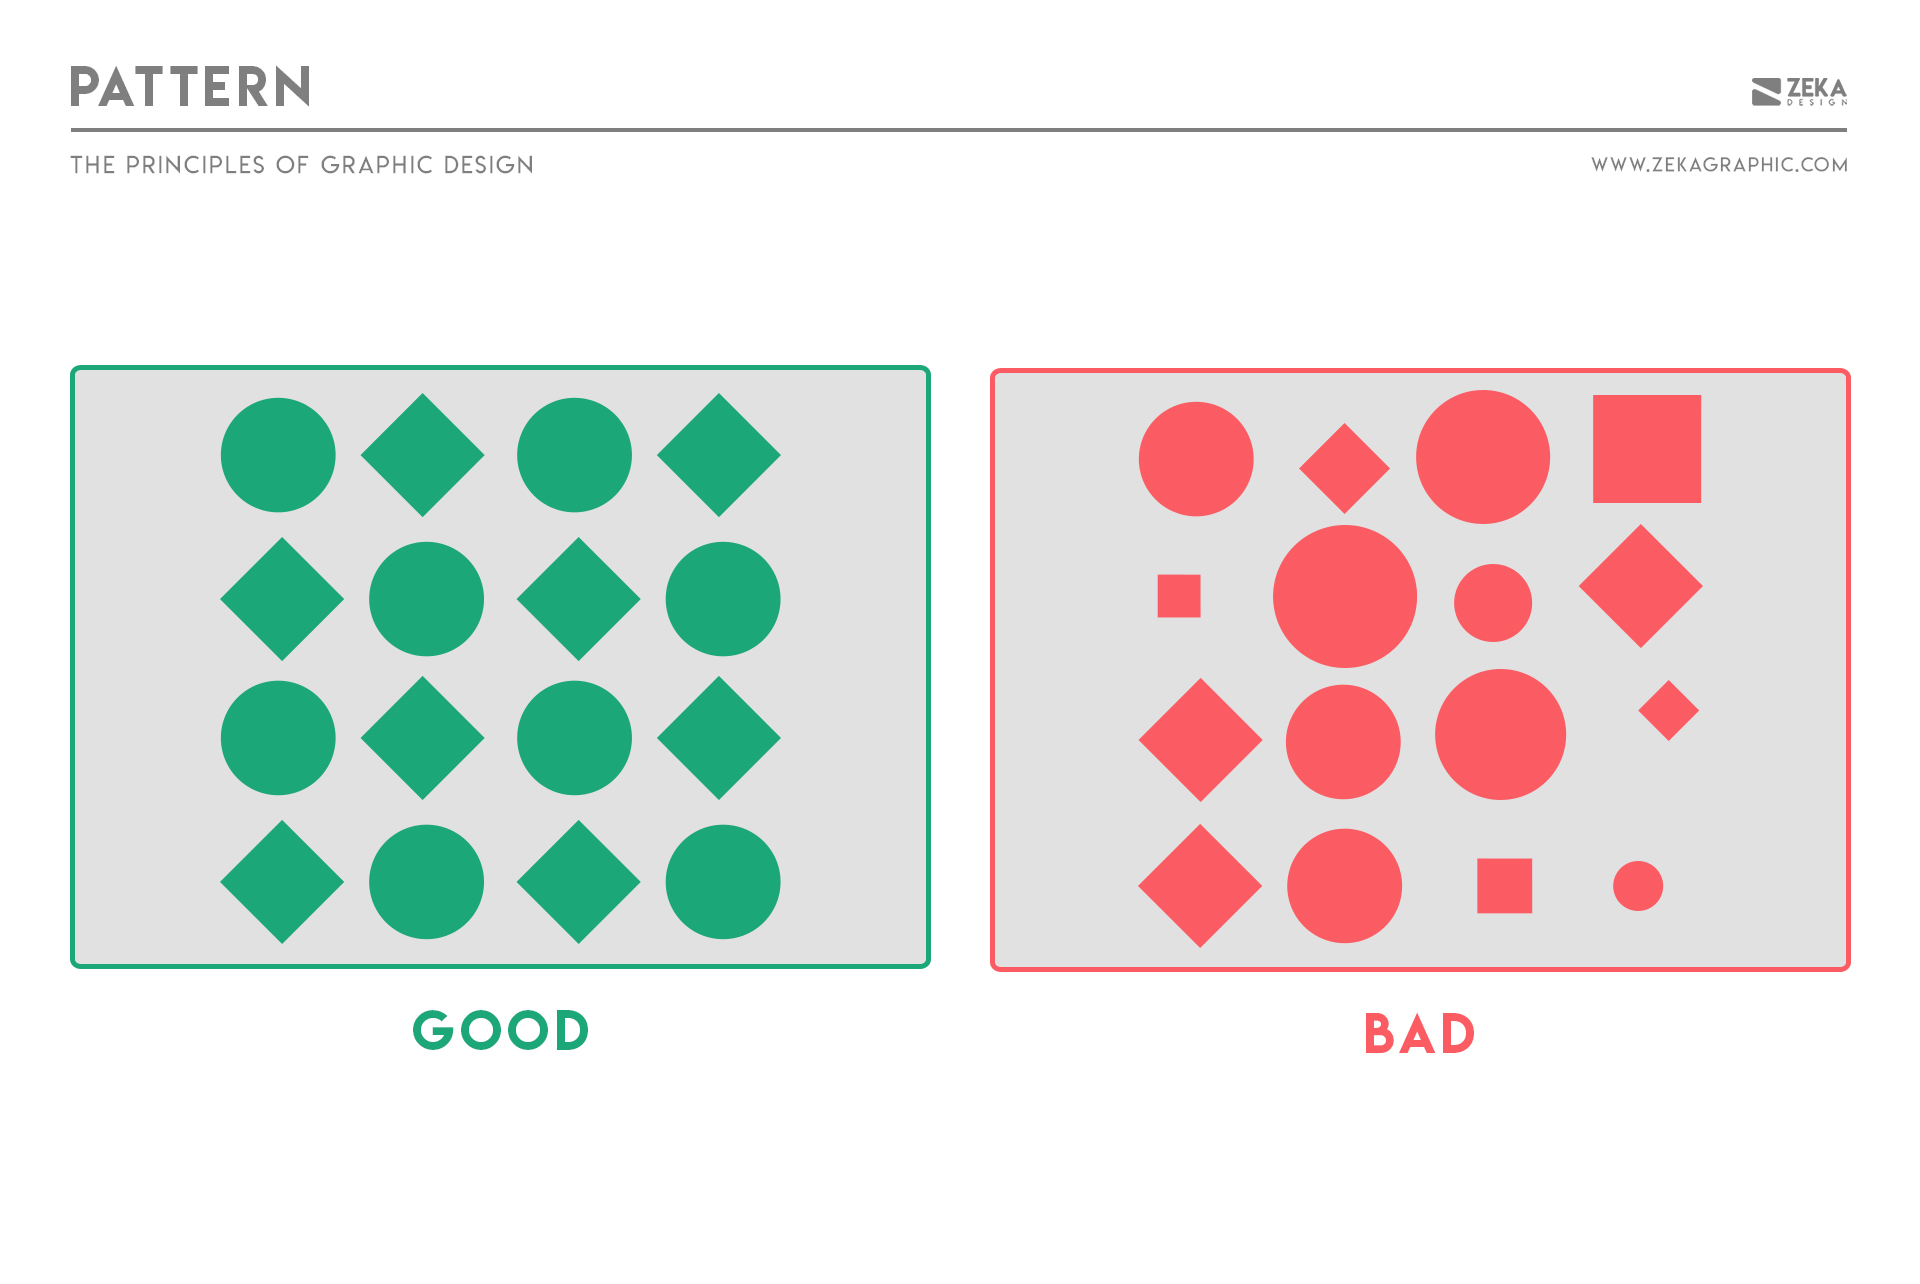 Pattern Principle in Graphic Design Explained